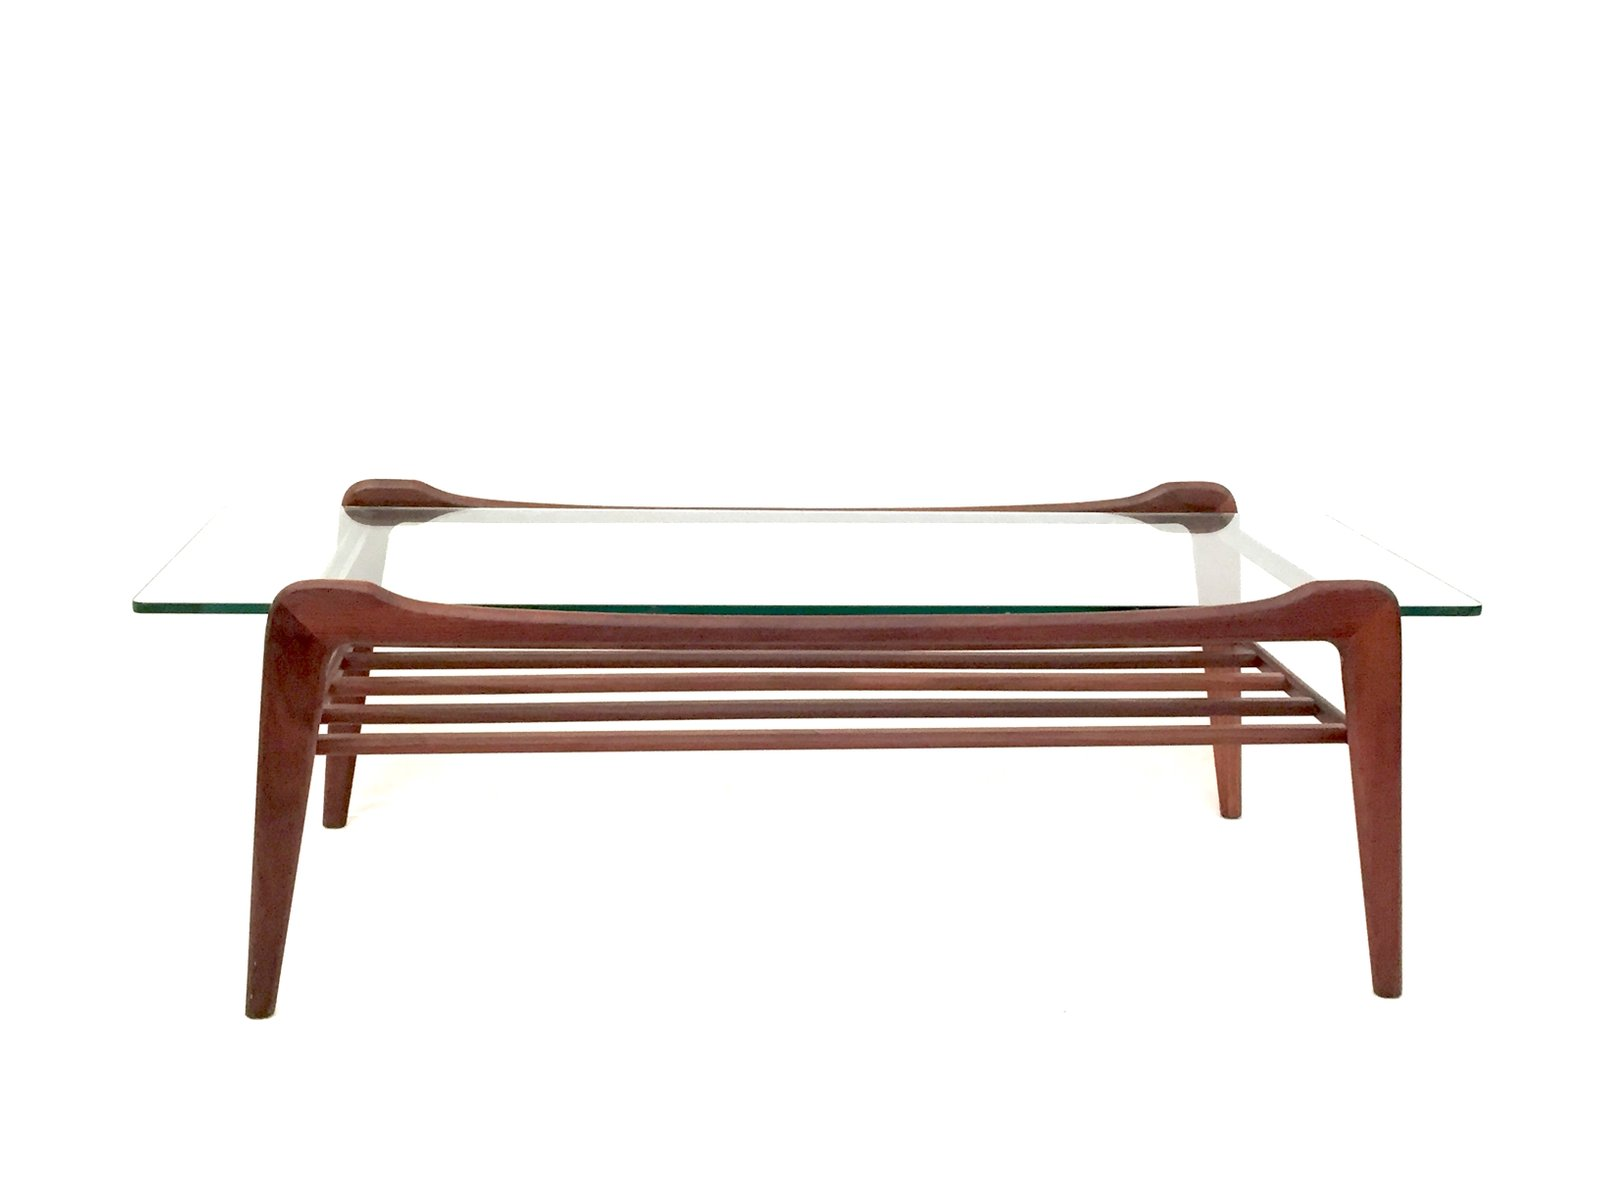 Vintage Teak & Glass Coffee Table from G Plan 1970s for sale at